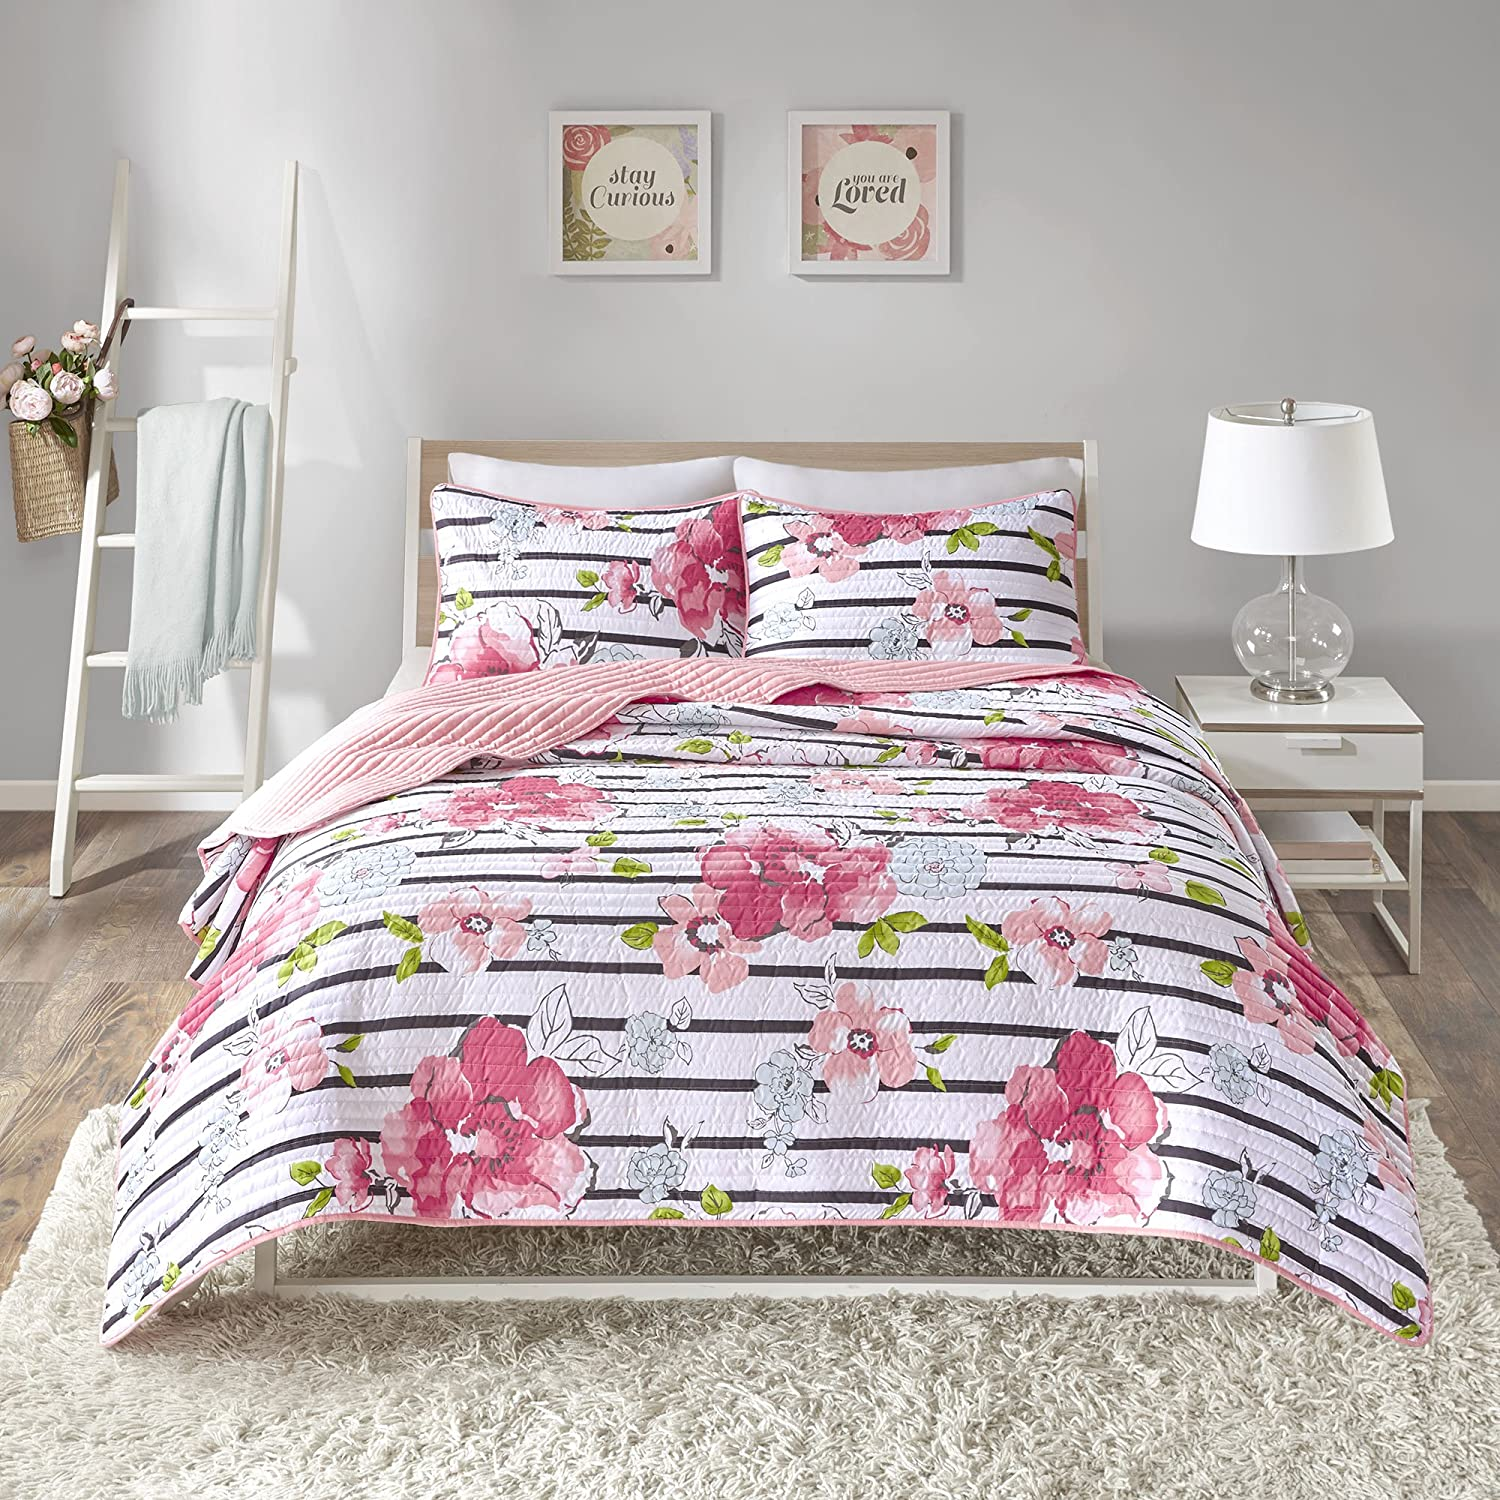 """Comfort Spaces Quilt Coverlet Bedspread Adorable Ultra Soft Microfiber Printed Floral Design Bedding Set, Twin/Twin XL(66""""x86""""), Zoe Flower Pink"""